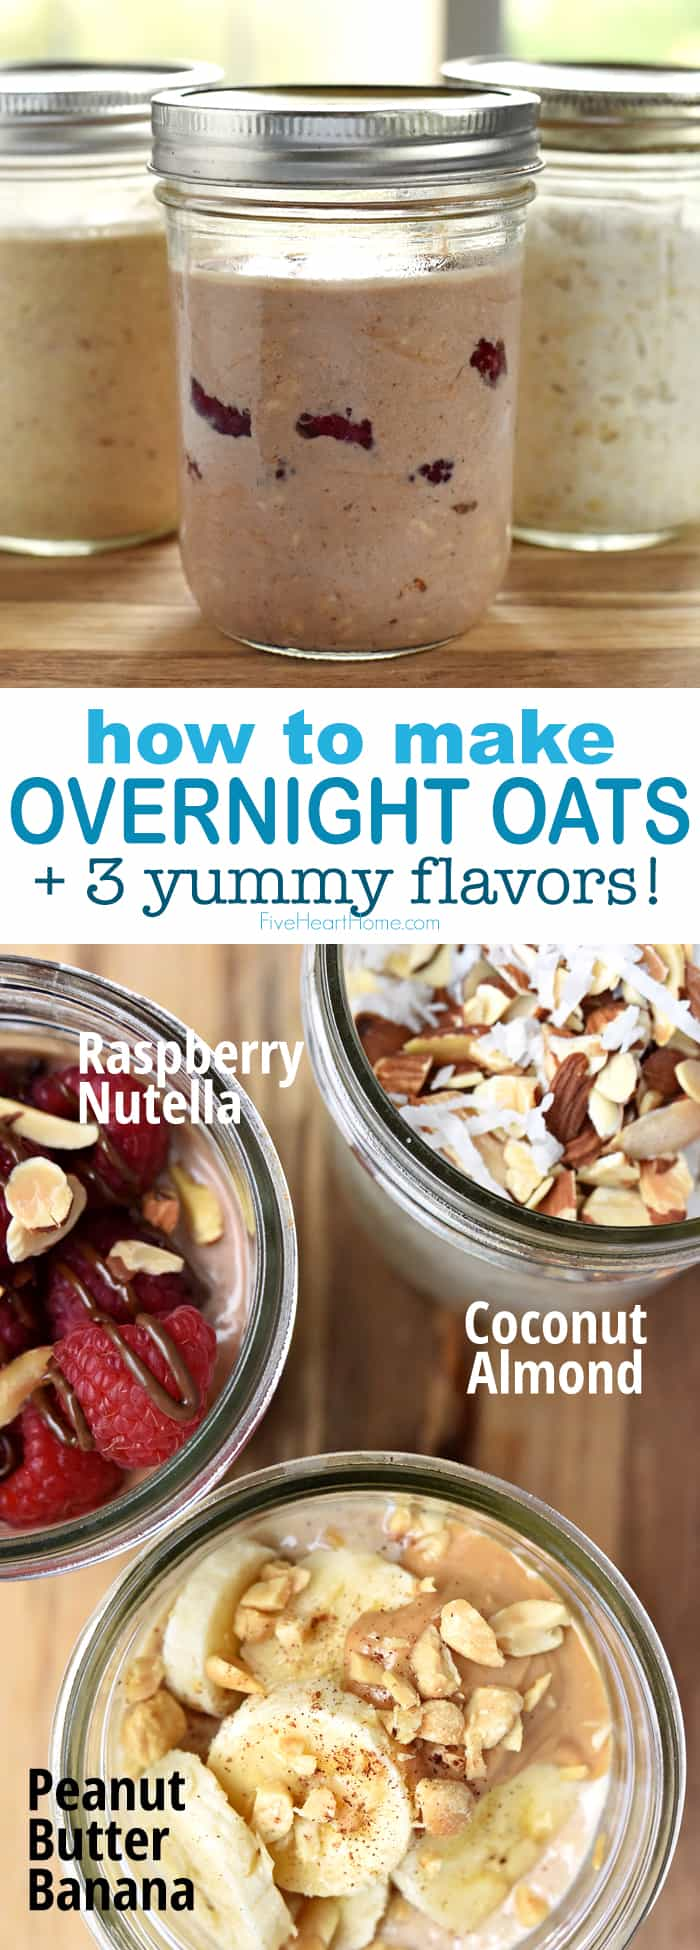 The ULTIMATE Guide to Overnight Oats ~ creamy, wholesome Overnight Oats are as simple as refrigerating oats, milk, yogurt, and your favorite flavors overnight for an instant, no-cook breakfast. And here are three yummy flavors to get you started...Peanut Butter Banana, Raspberry Nutella, & Coconut Almond! | FiveHeartHome.com #overnightoats